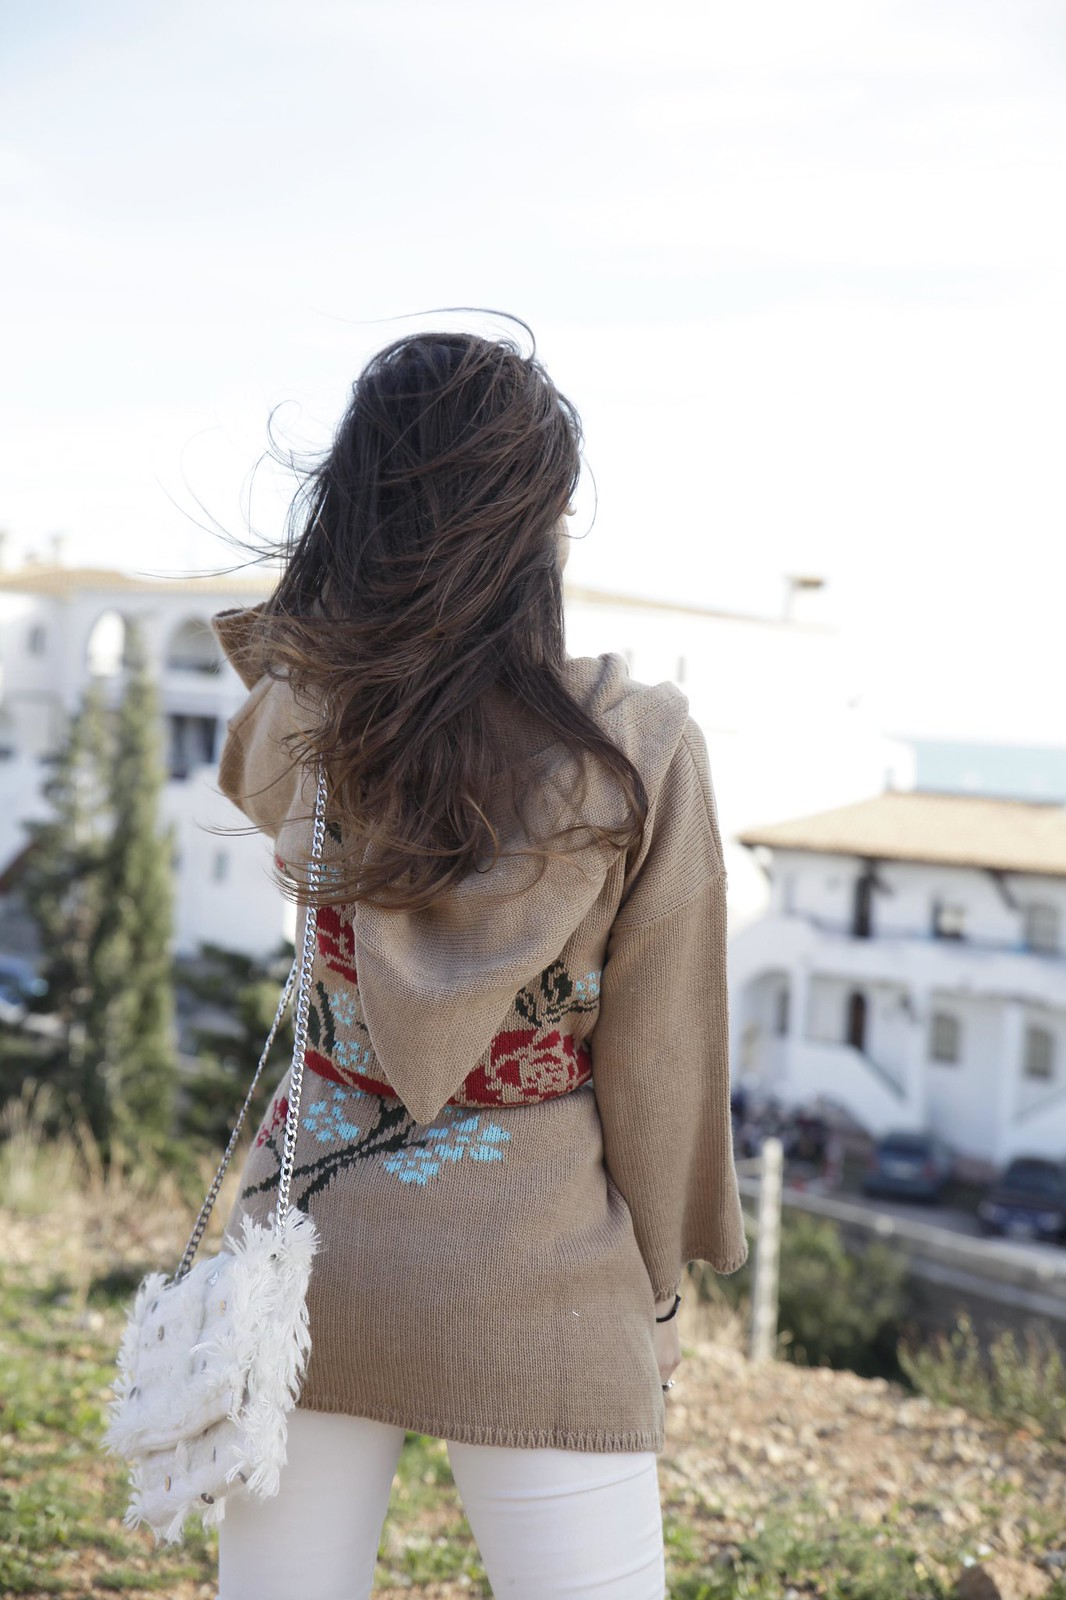 016_trend_alert_flowers_outfit_spring_blogger_influencer_barcelona_theguestgirl_laura_santolaria